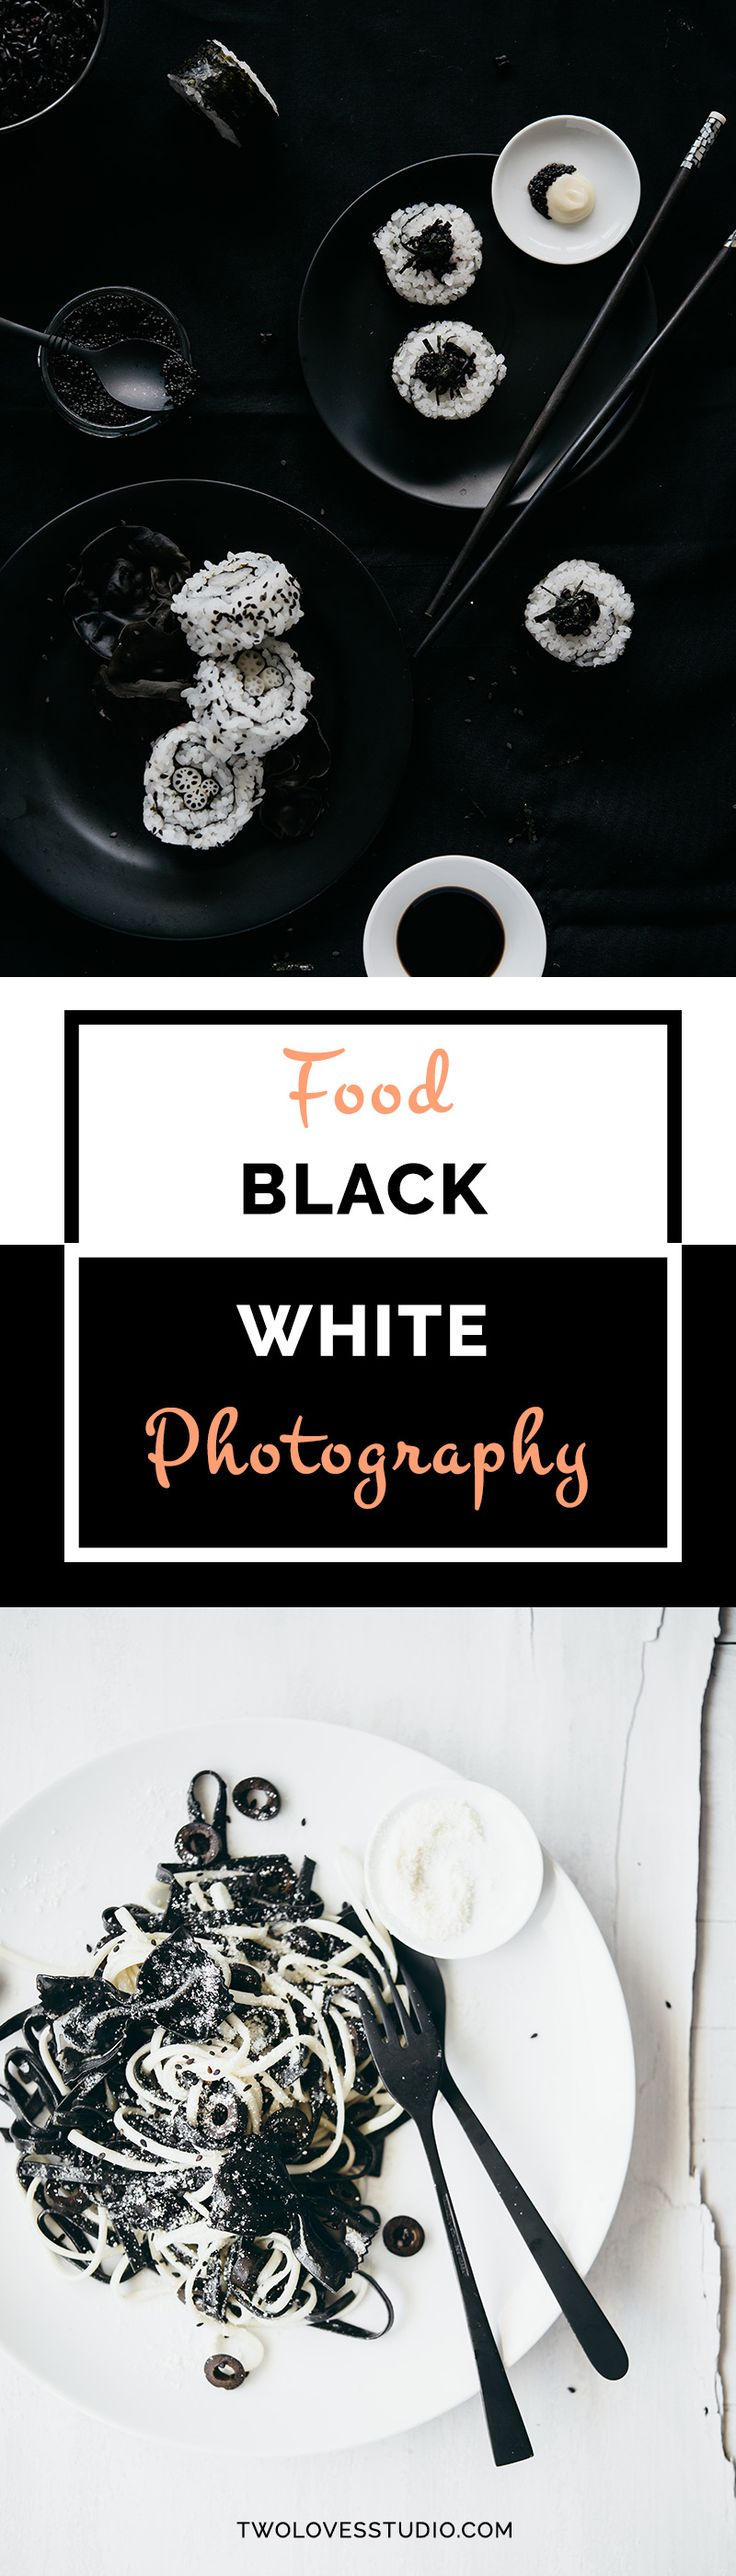 Two Loves Studio | Black + White Food Photography But Not As You Know It